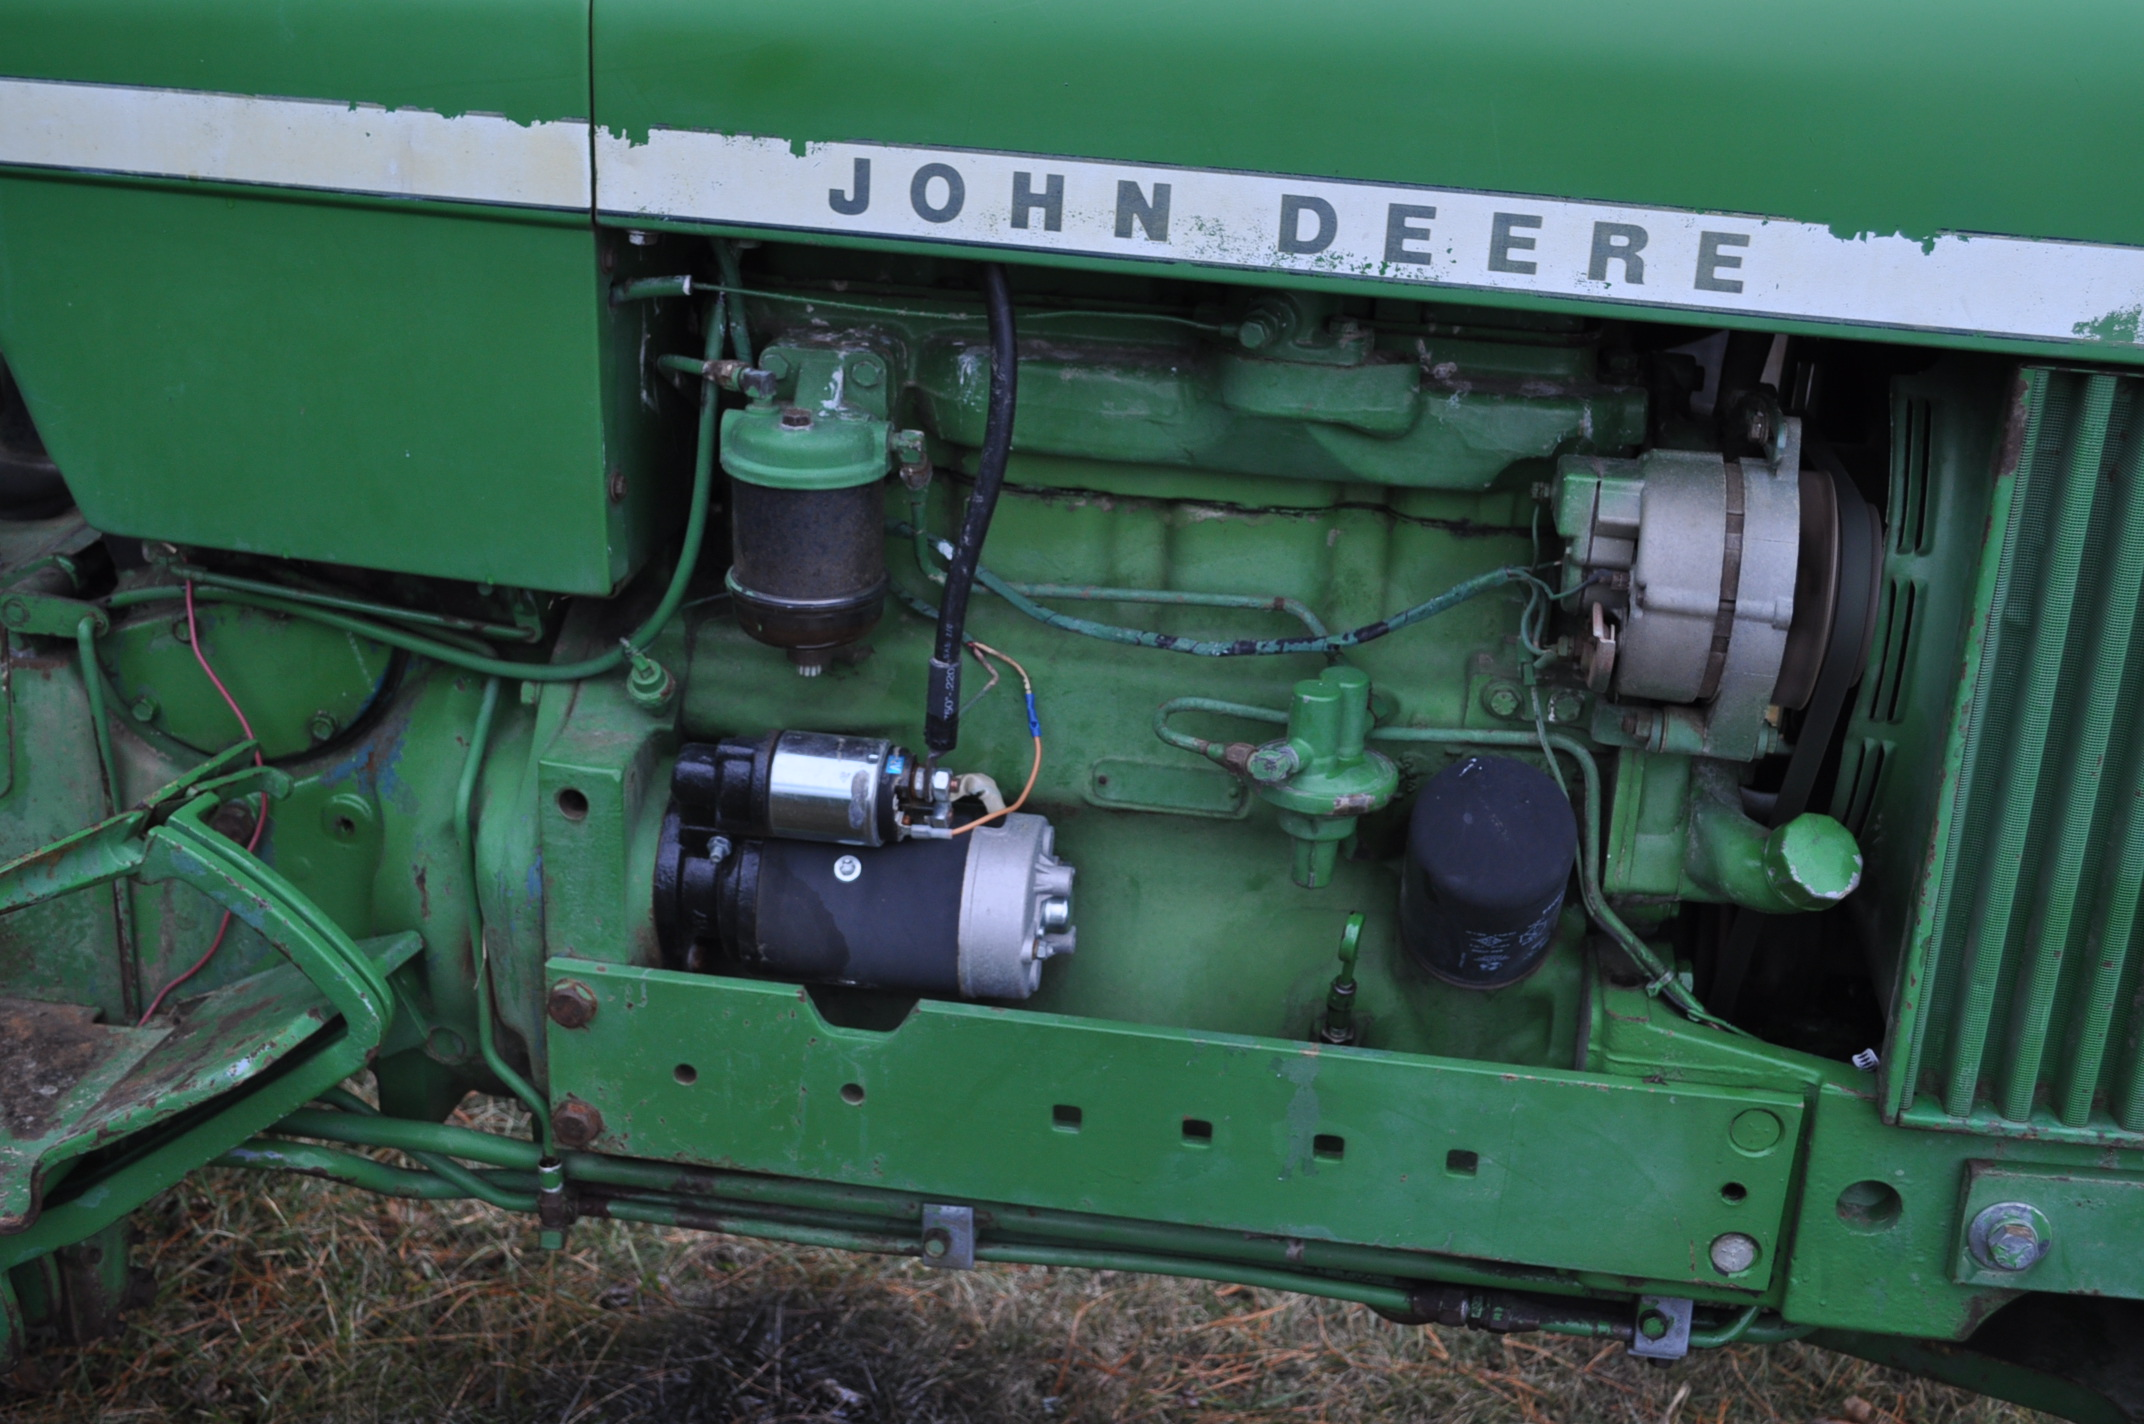 John Deere 2030 tractor, diesel, 16.9-28 rear, 7.5-15 front, canopy, power shuttle, 2 hyd remotes, - Image 9 of 20